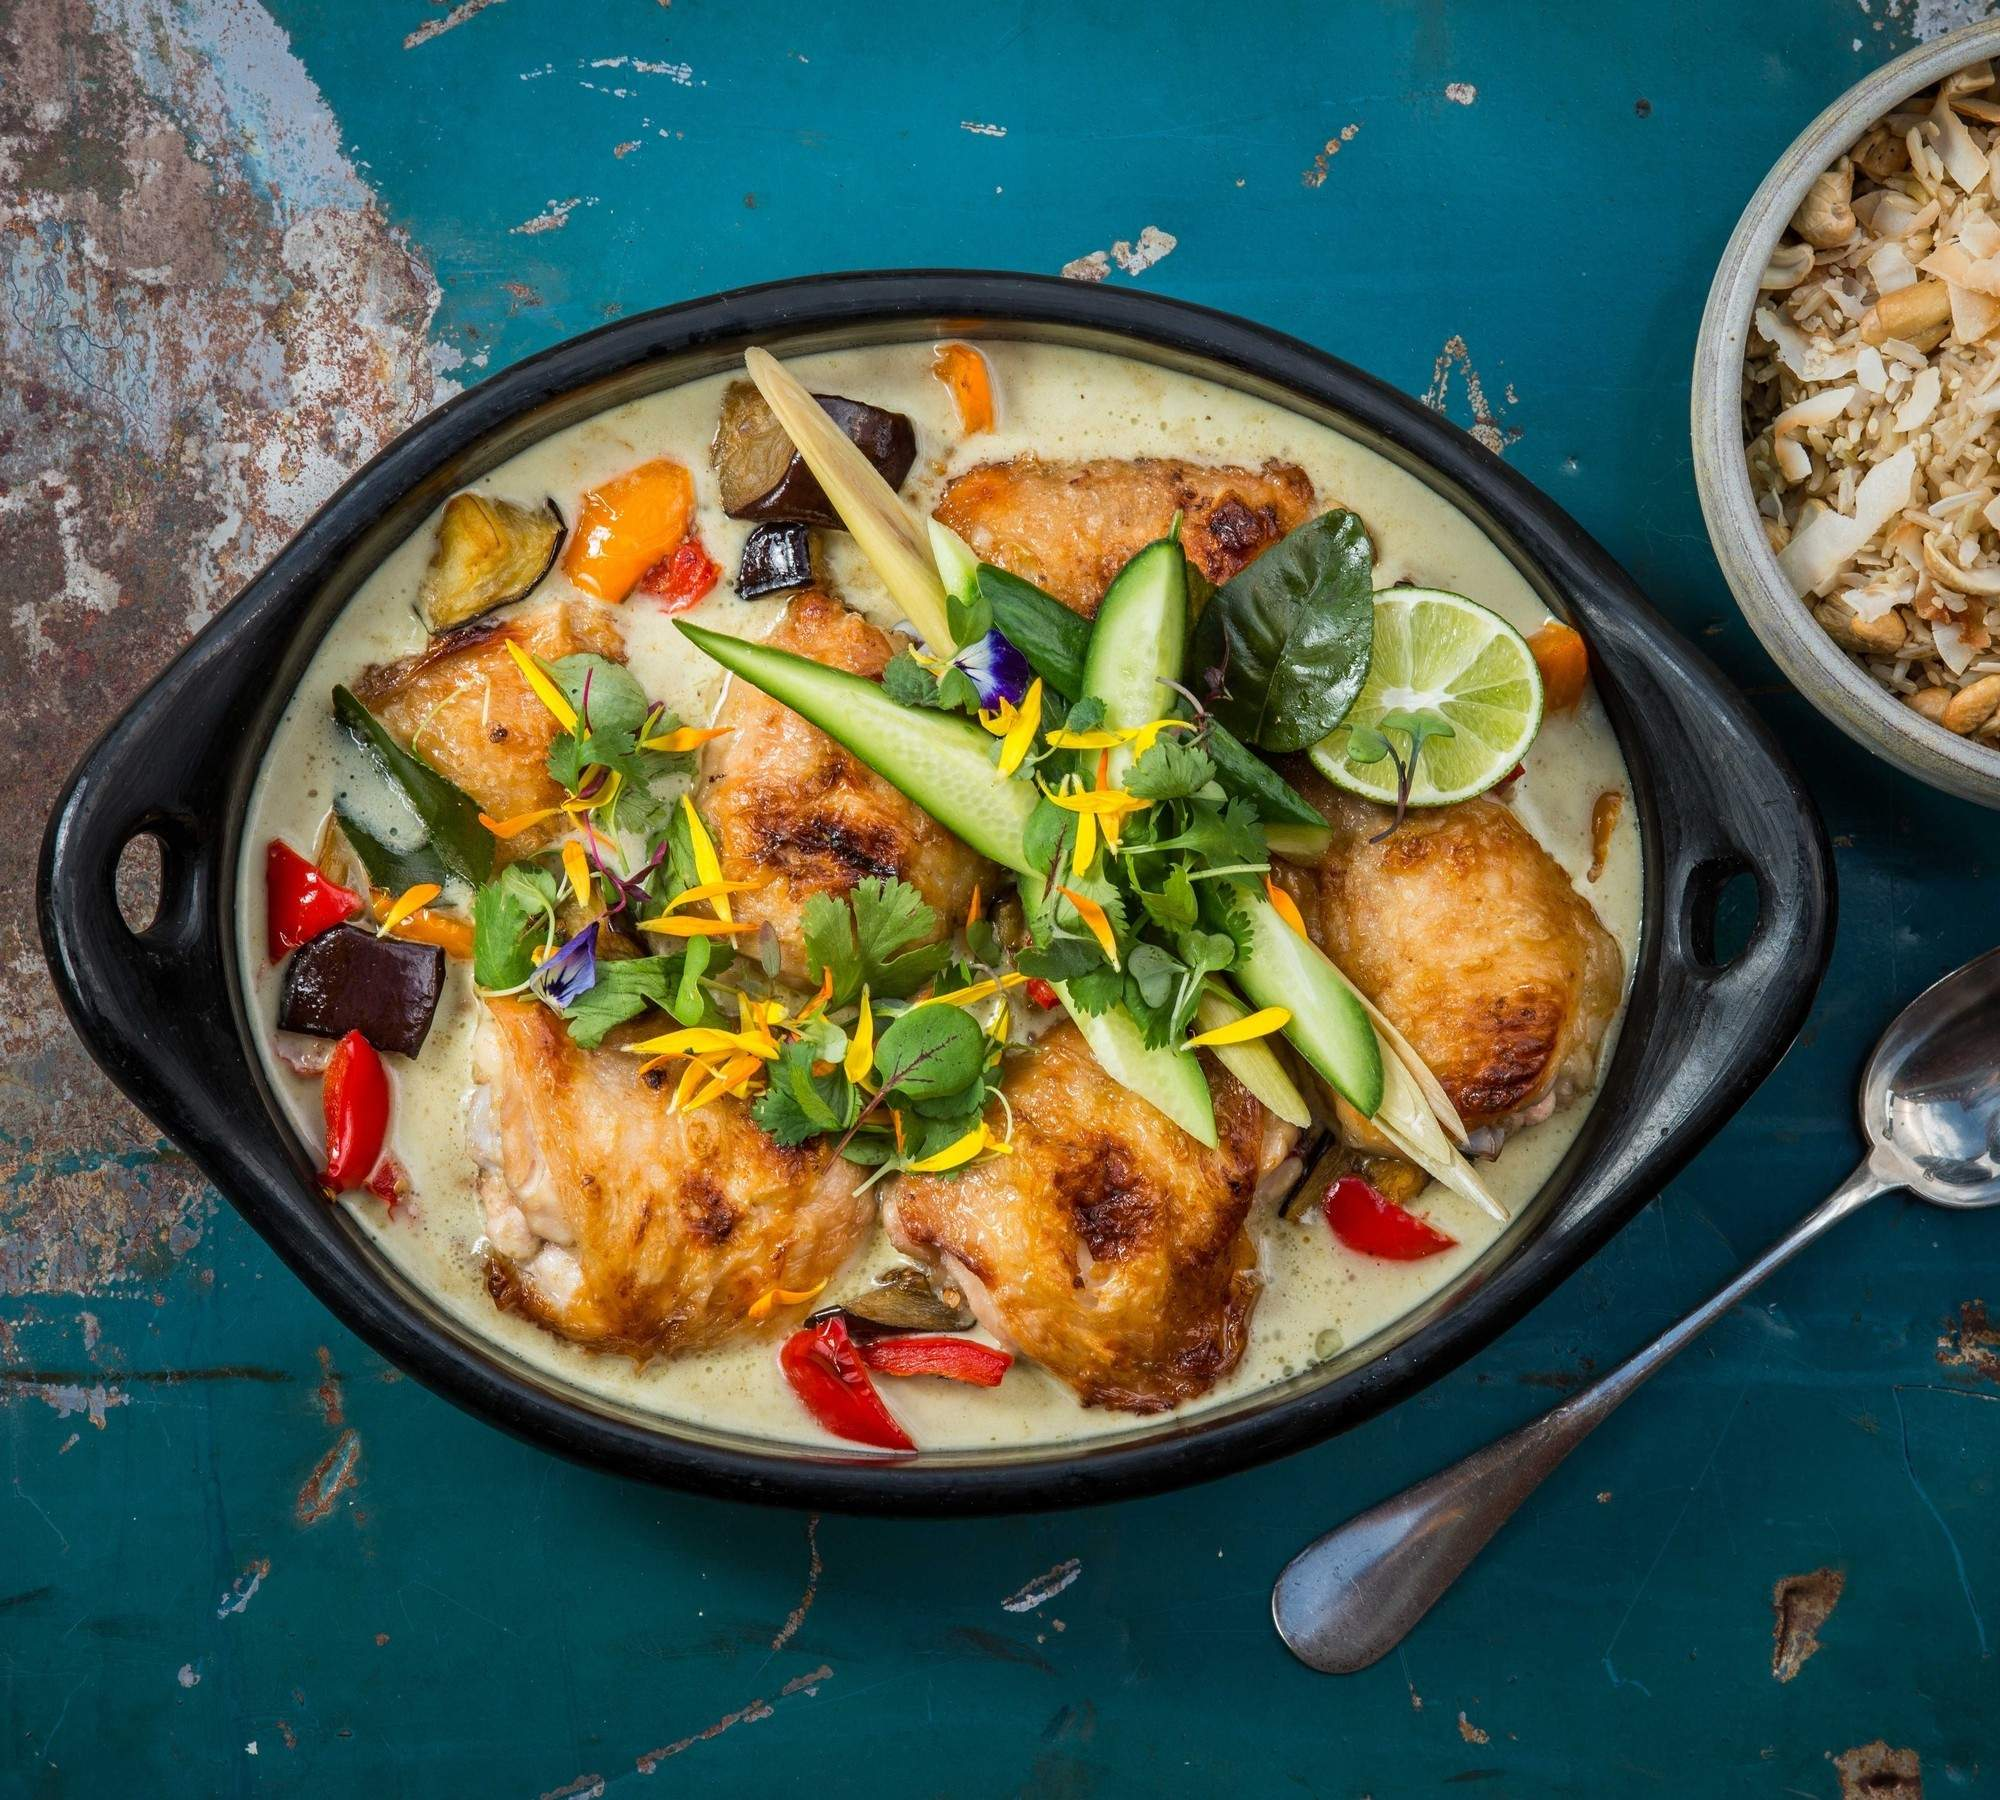 Green curry chicken with roasted eggplant and red peppers